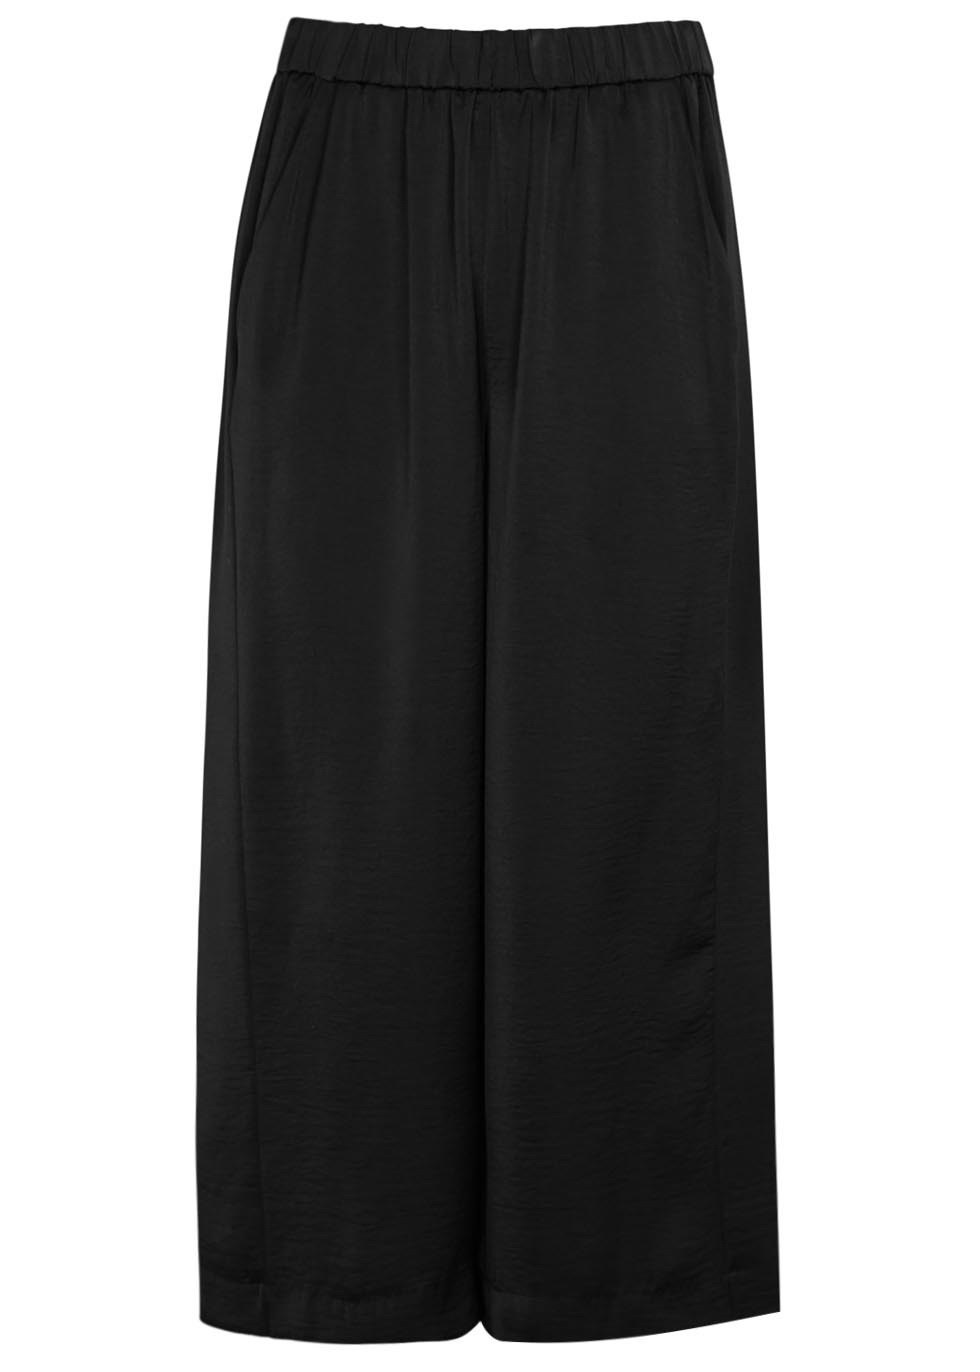 Black Cropped Wide Leg Satin Trousers - pattern: plain; waist: mid/regular rise; predominant colour: black; occasions: evening; length: calf length; fibres: polyester/polyamide - 100%; texture group: structured shiny - satin/tafetta/silk etc.; fit: wide leg; pattern type: fabric; style: standard; season: s/s 2016; wardrobe: event